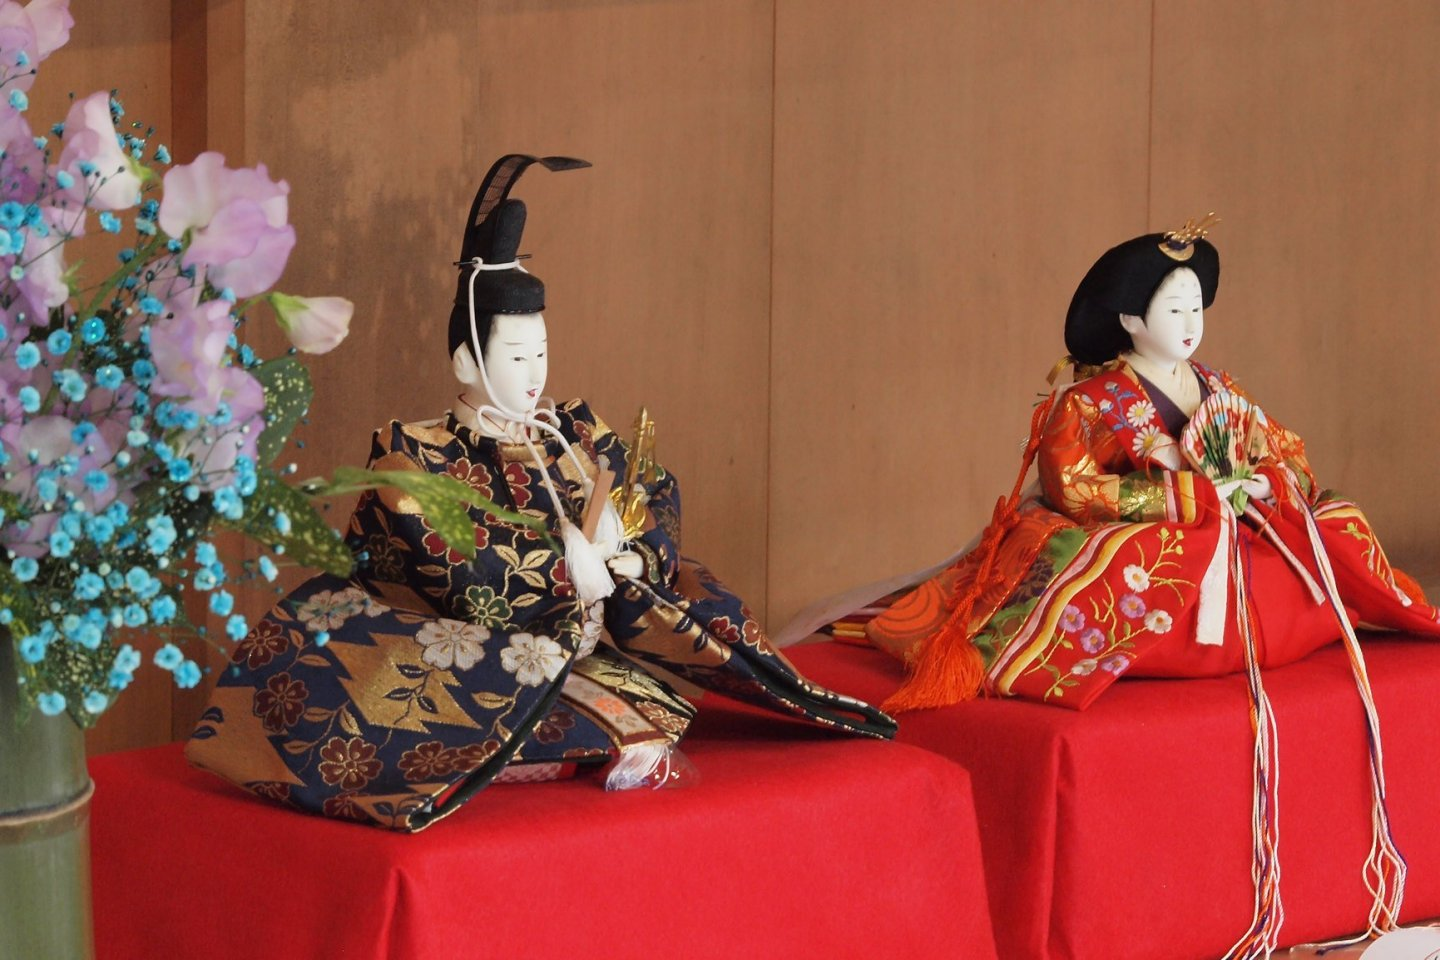 Hina dolls are displayed across many households in Japan for Girls\' Day on March 3rd.